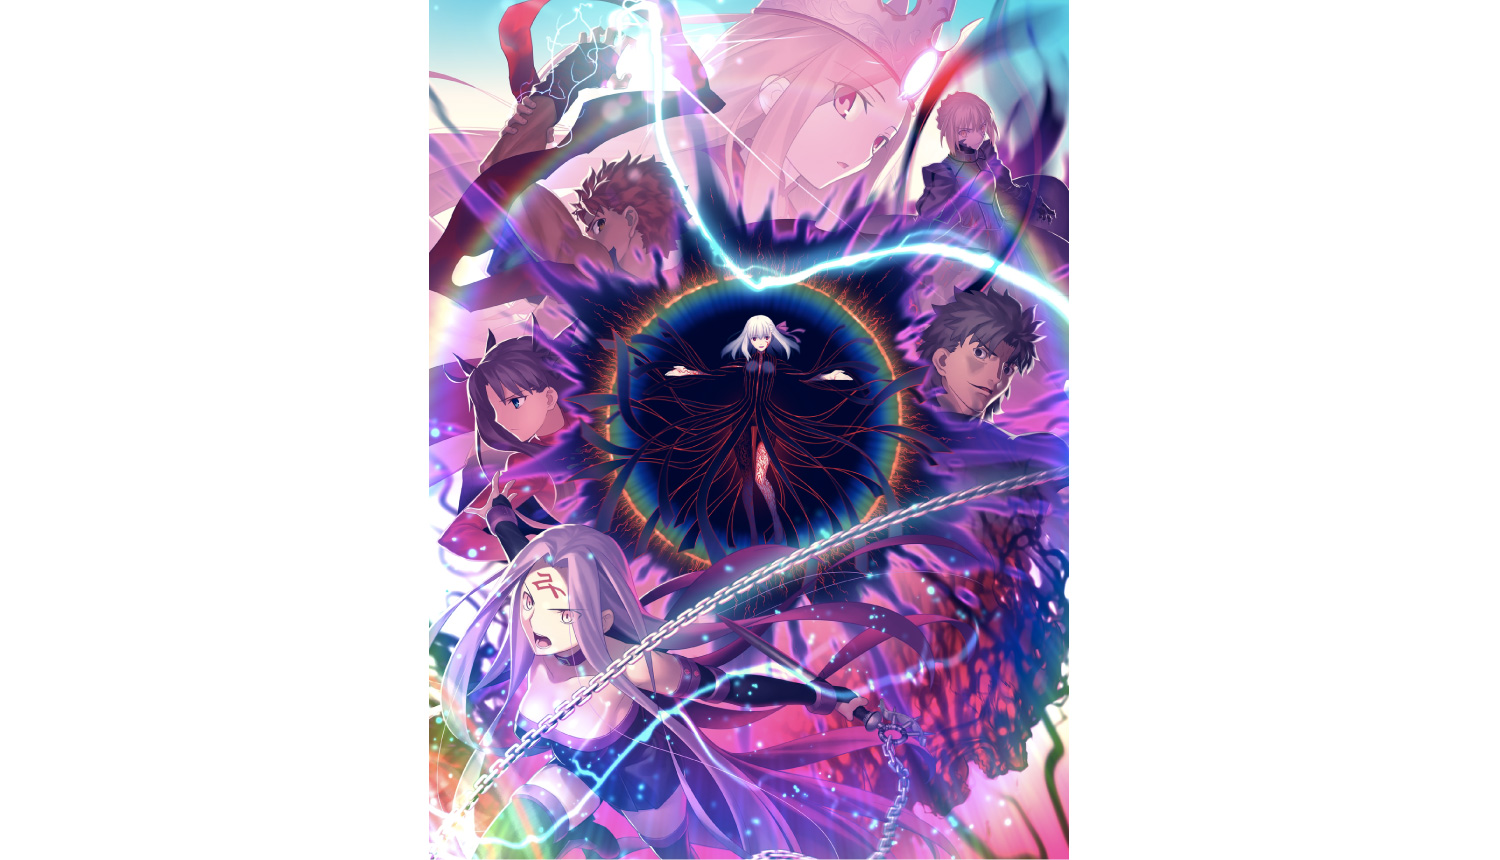 Aimer エメ Fate:stay night